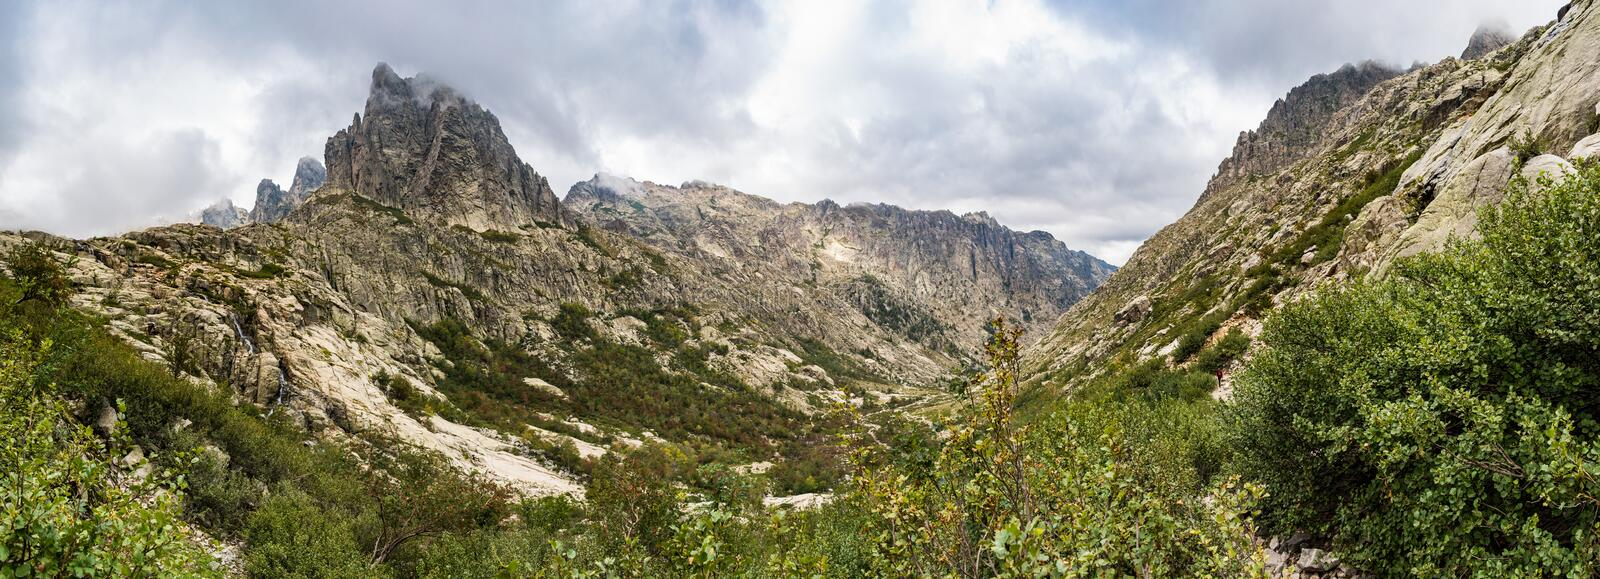 Panoramic view of the Restonica valley in front of Lombarduccio, a 2261m high mountain in Corsica. royalty free stock image